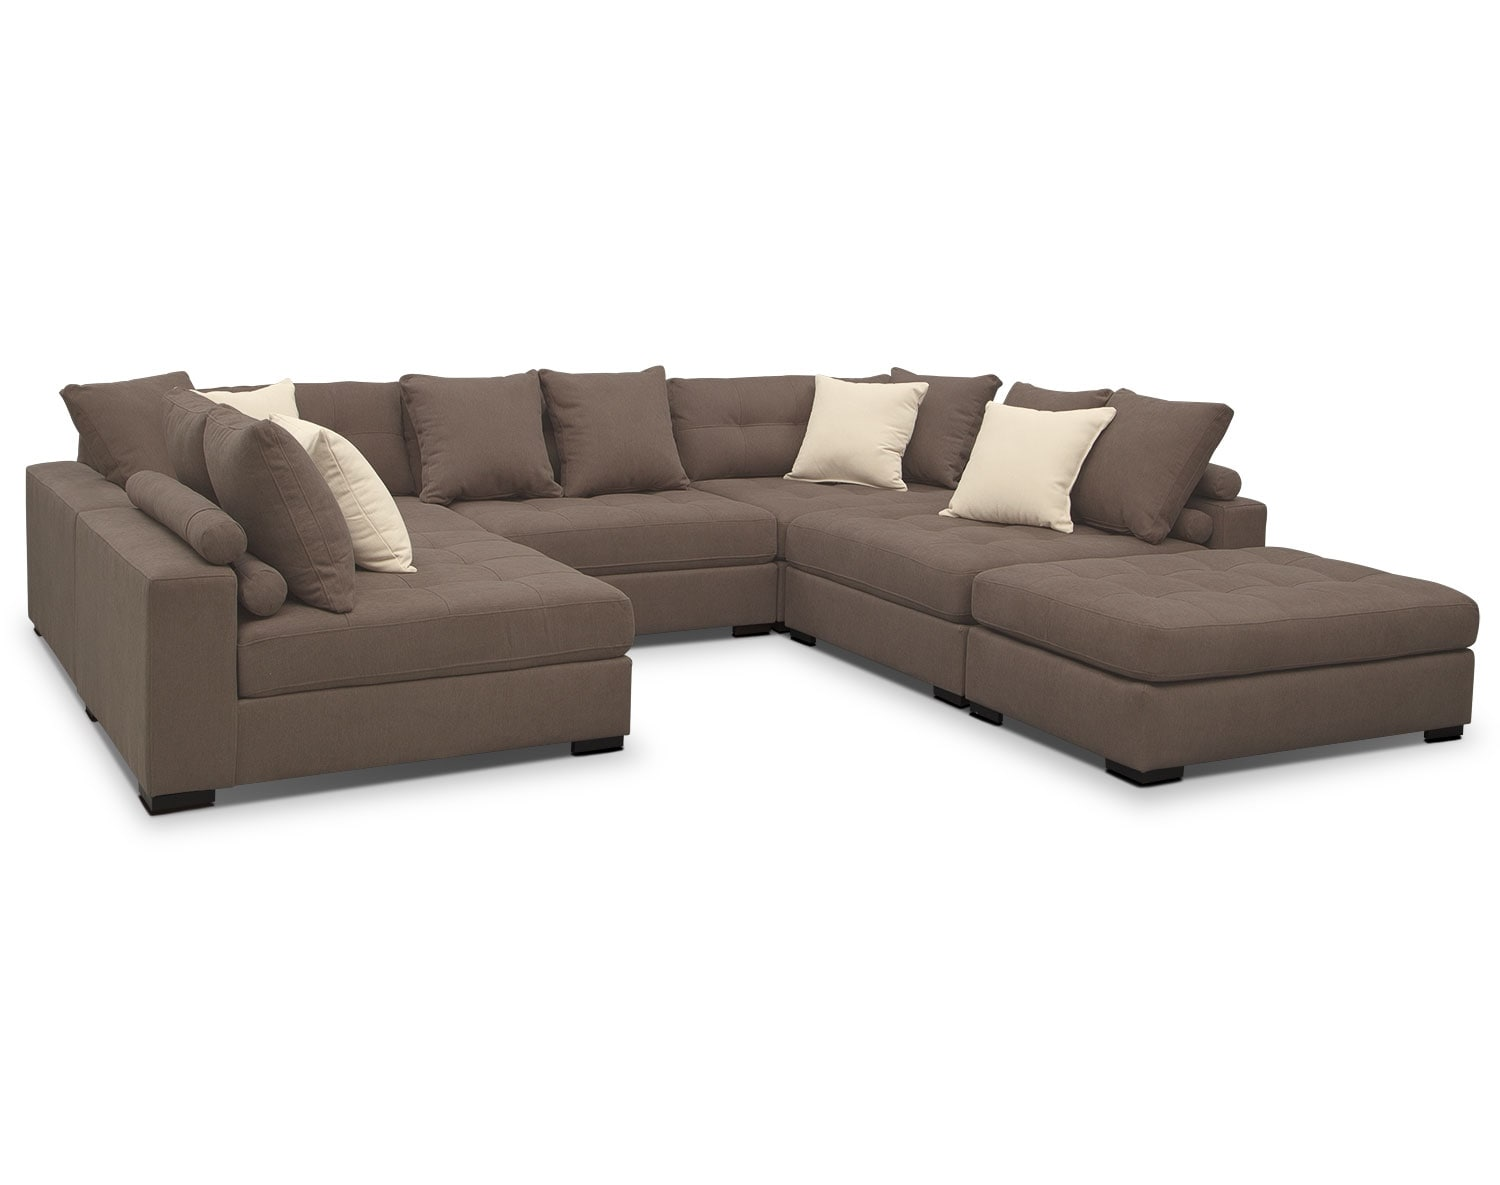 [The Venti Mocha Sectional Collection]